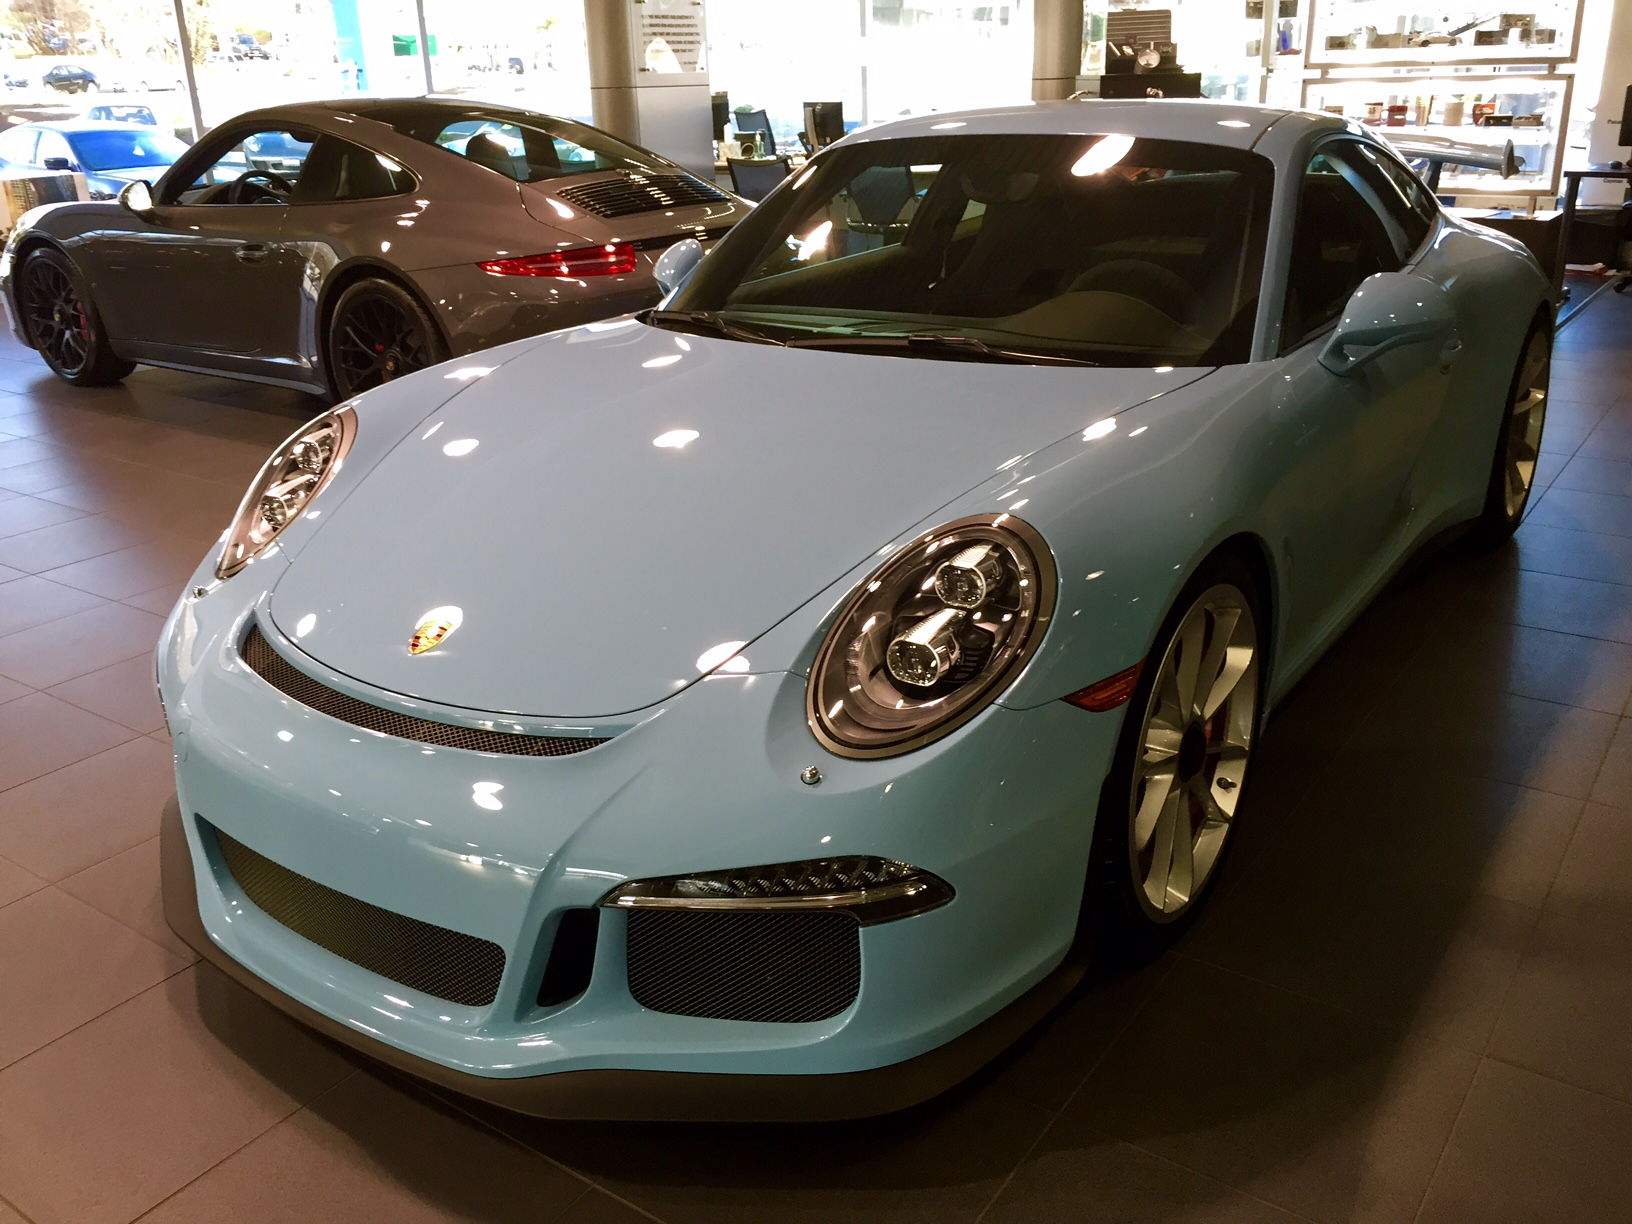 Porsche Of Towson >> Another PTS story! Customer orders Golf Blue and gets.... - Rennlist - Porsche Discussion Forums